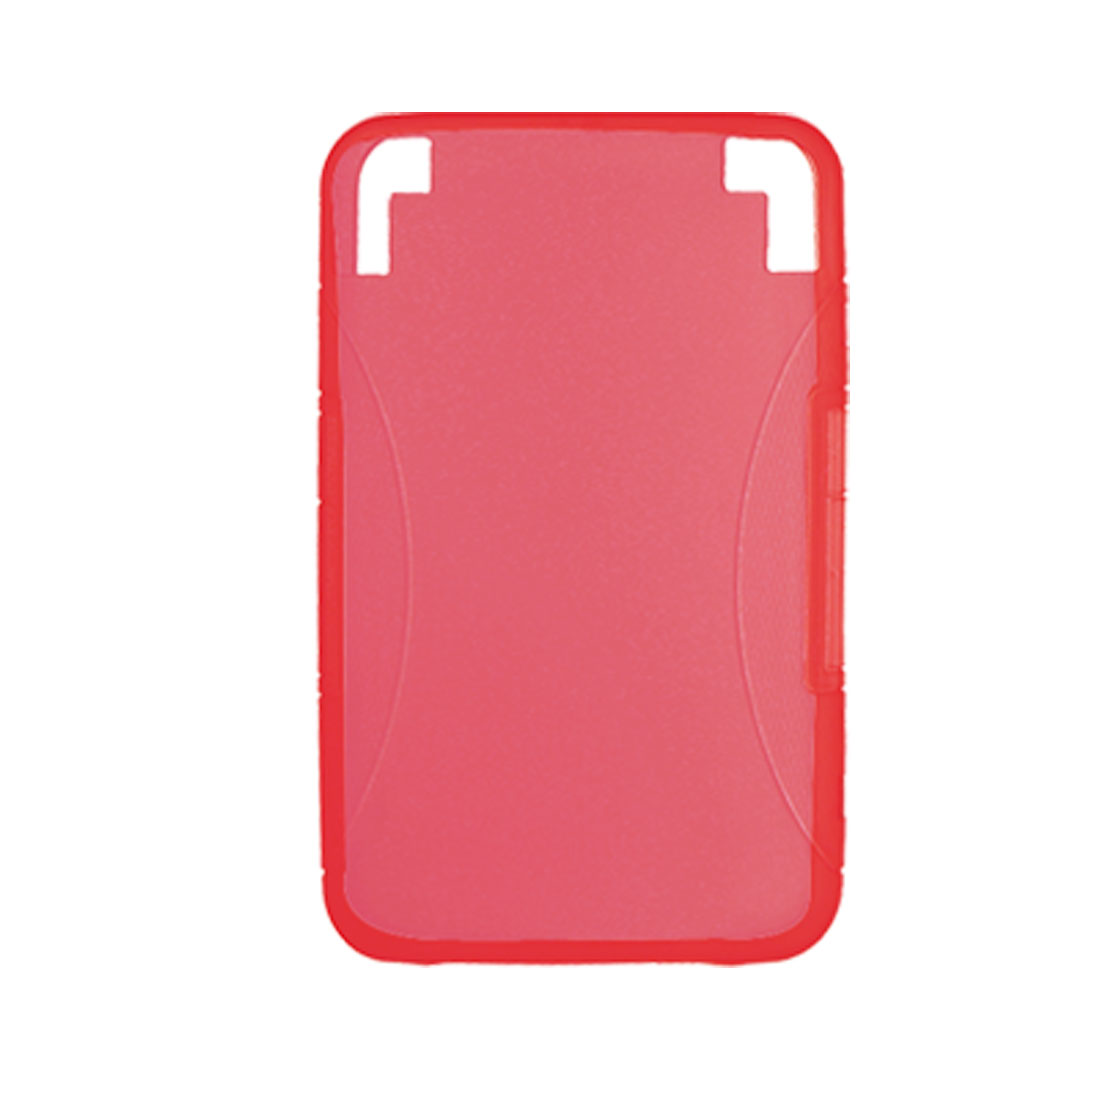 Solid Red Smooth Protective Case Guard for Amazon Kindle 3